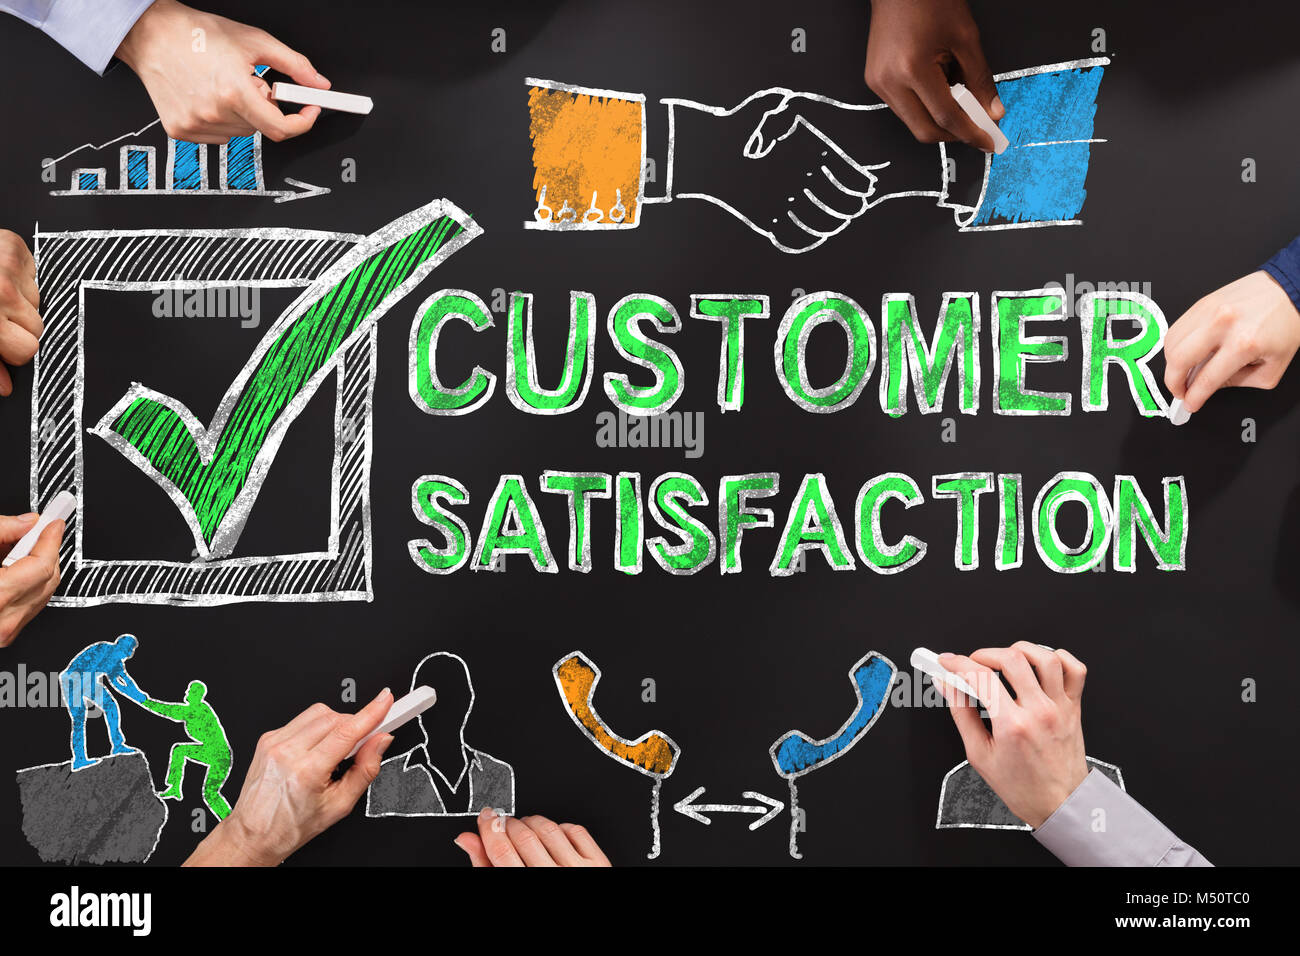 People Drawing Customer Satisfaction Survey Concept On Blackboard - Stock Image